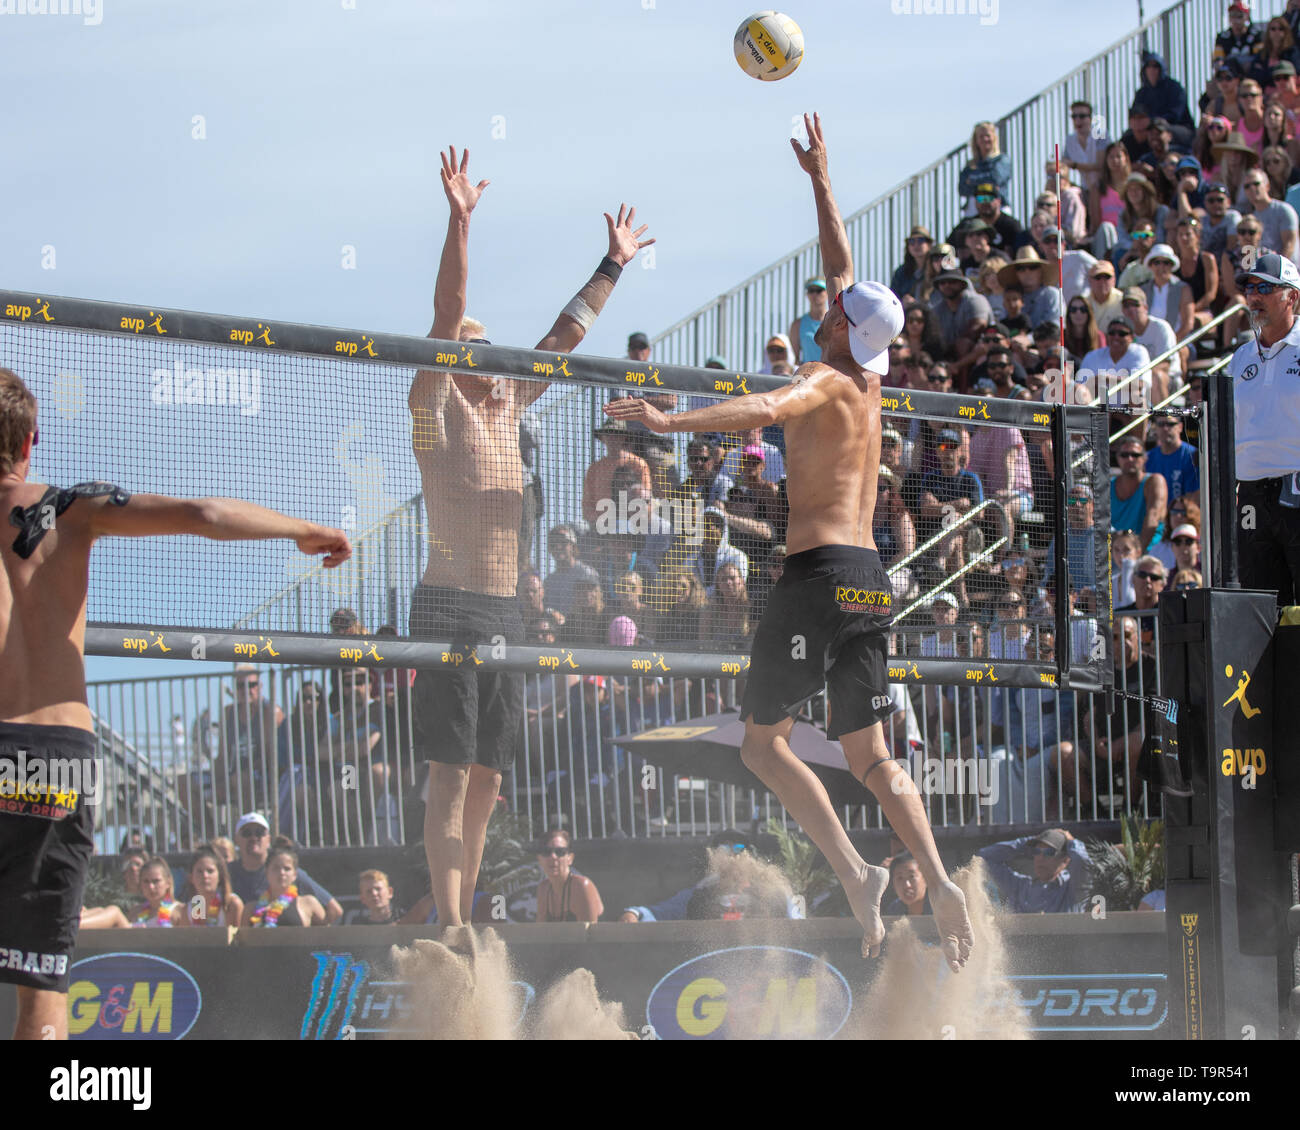 Jake Gibb hits over the block of Chase Budinger at the AVP Huntington Beach Open on 5 May 2019. (J. Geldermann/Alamy Live News) - Stock Image